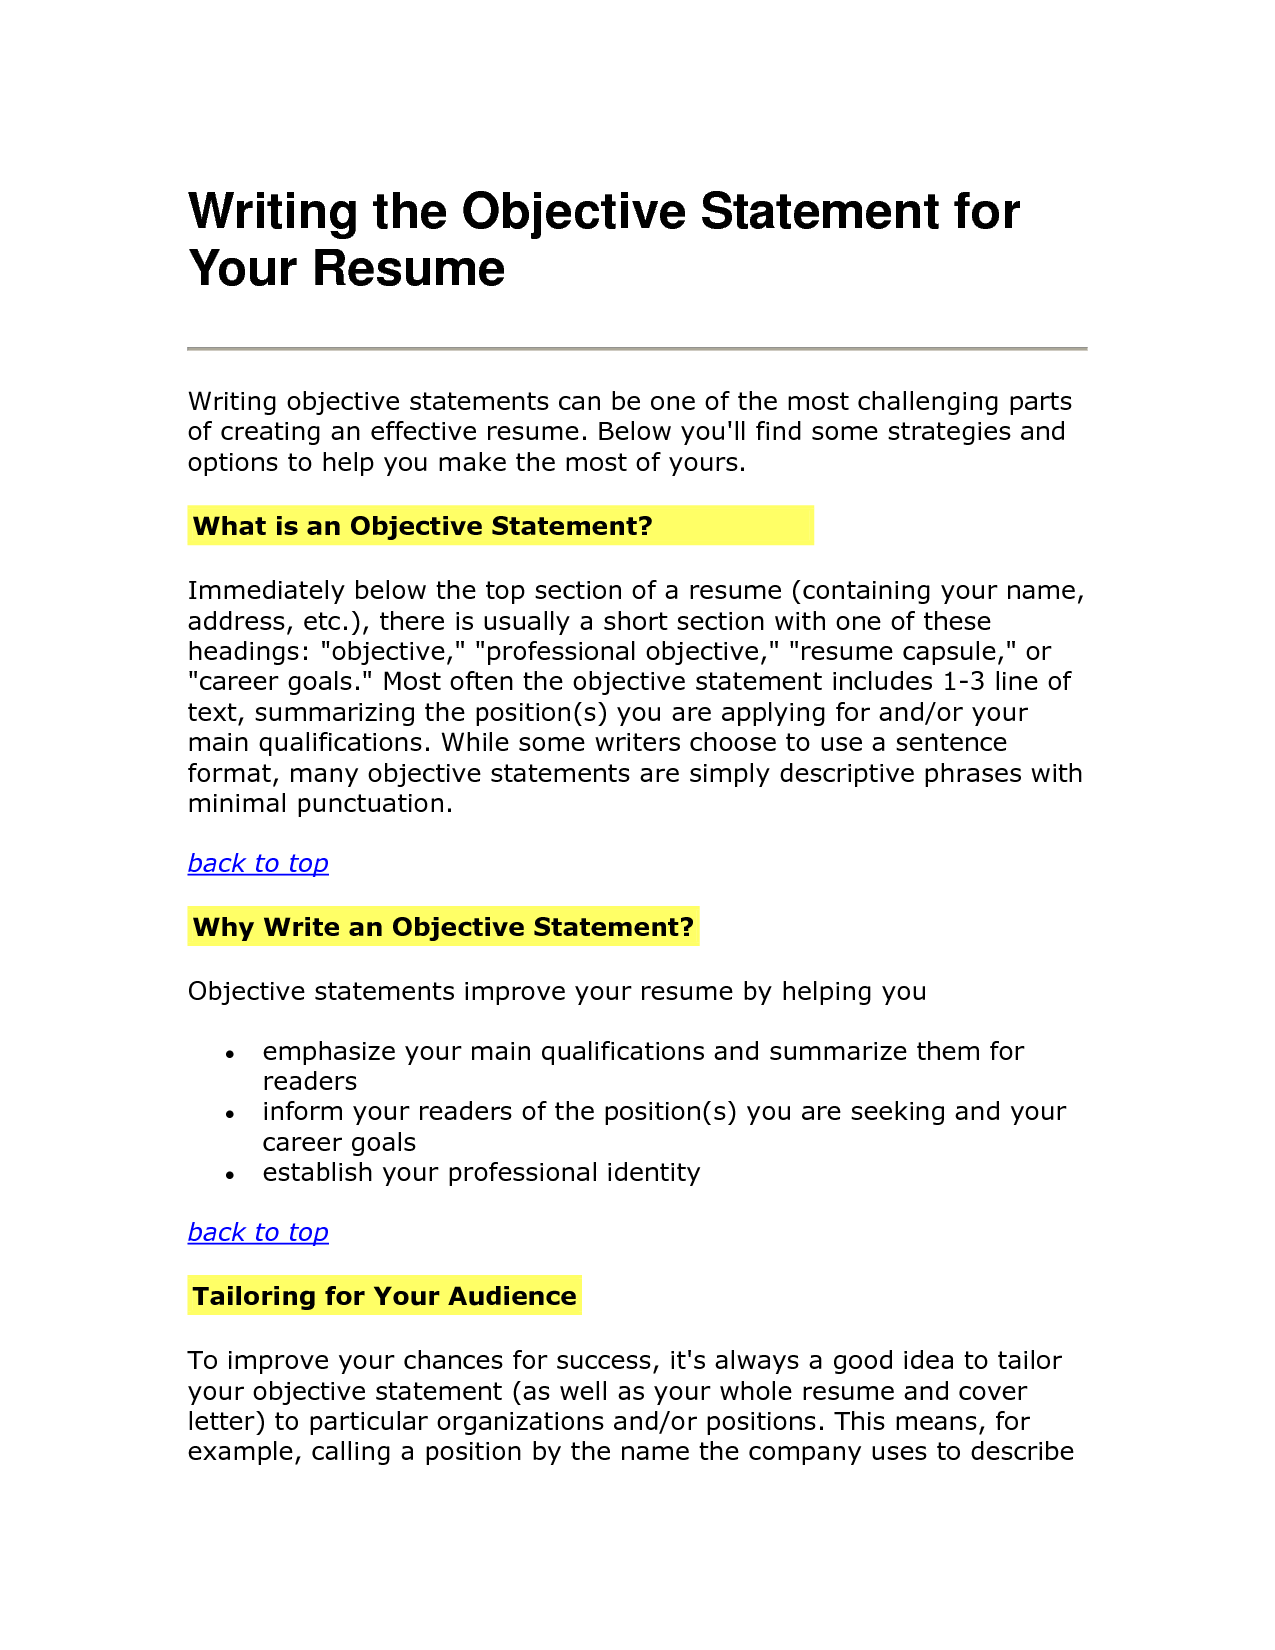 Writing The Objective Statement For Your Resume  Writing An Objective For A Resume